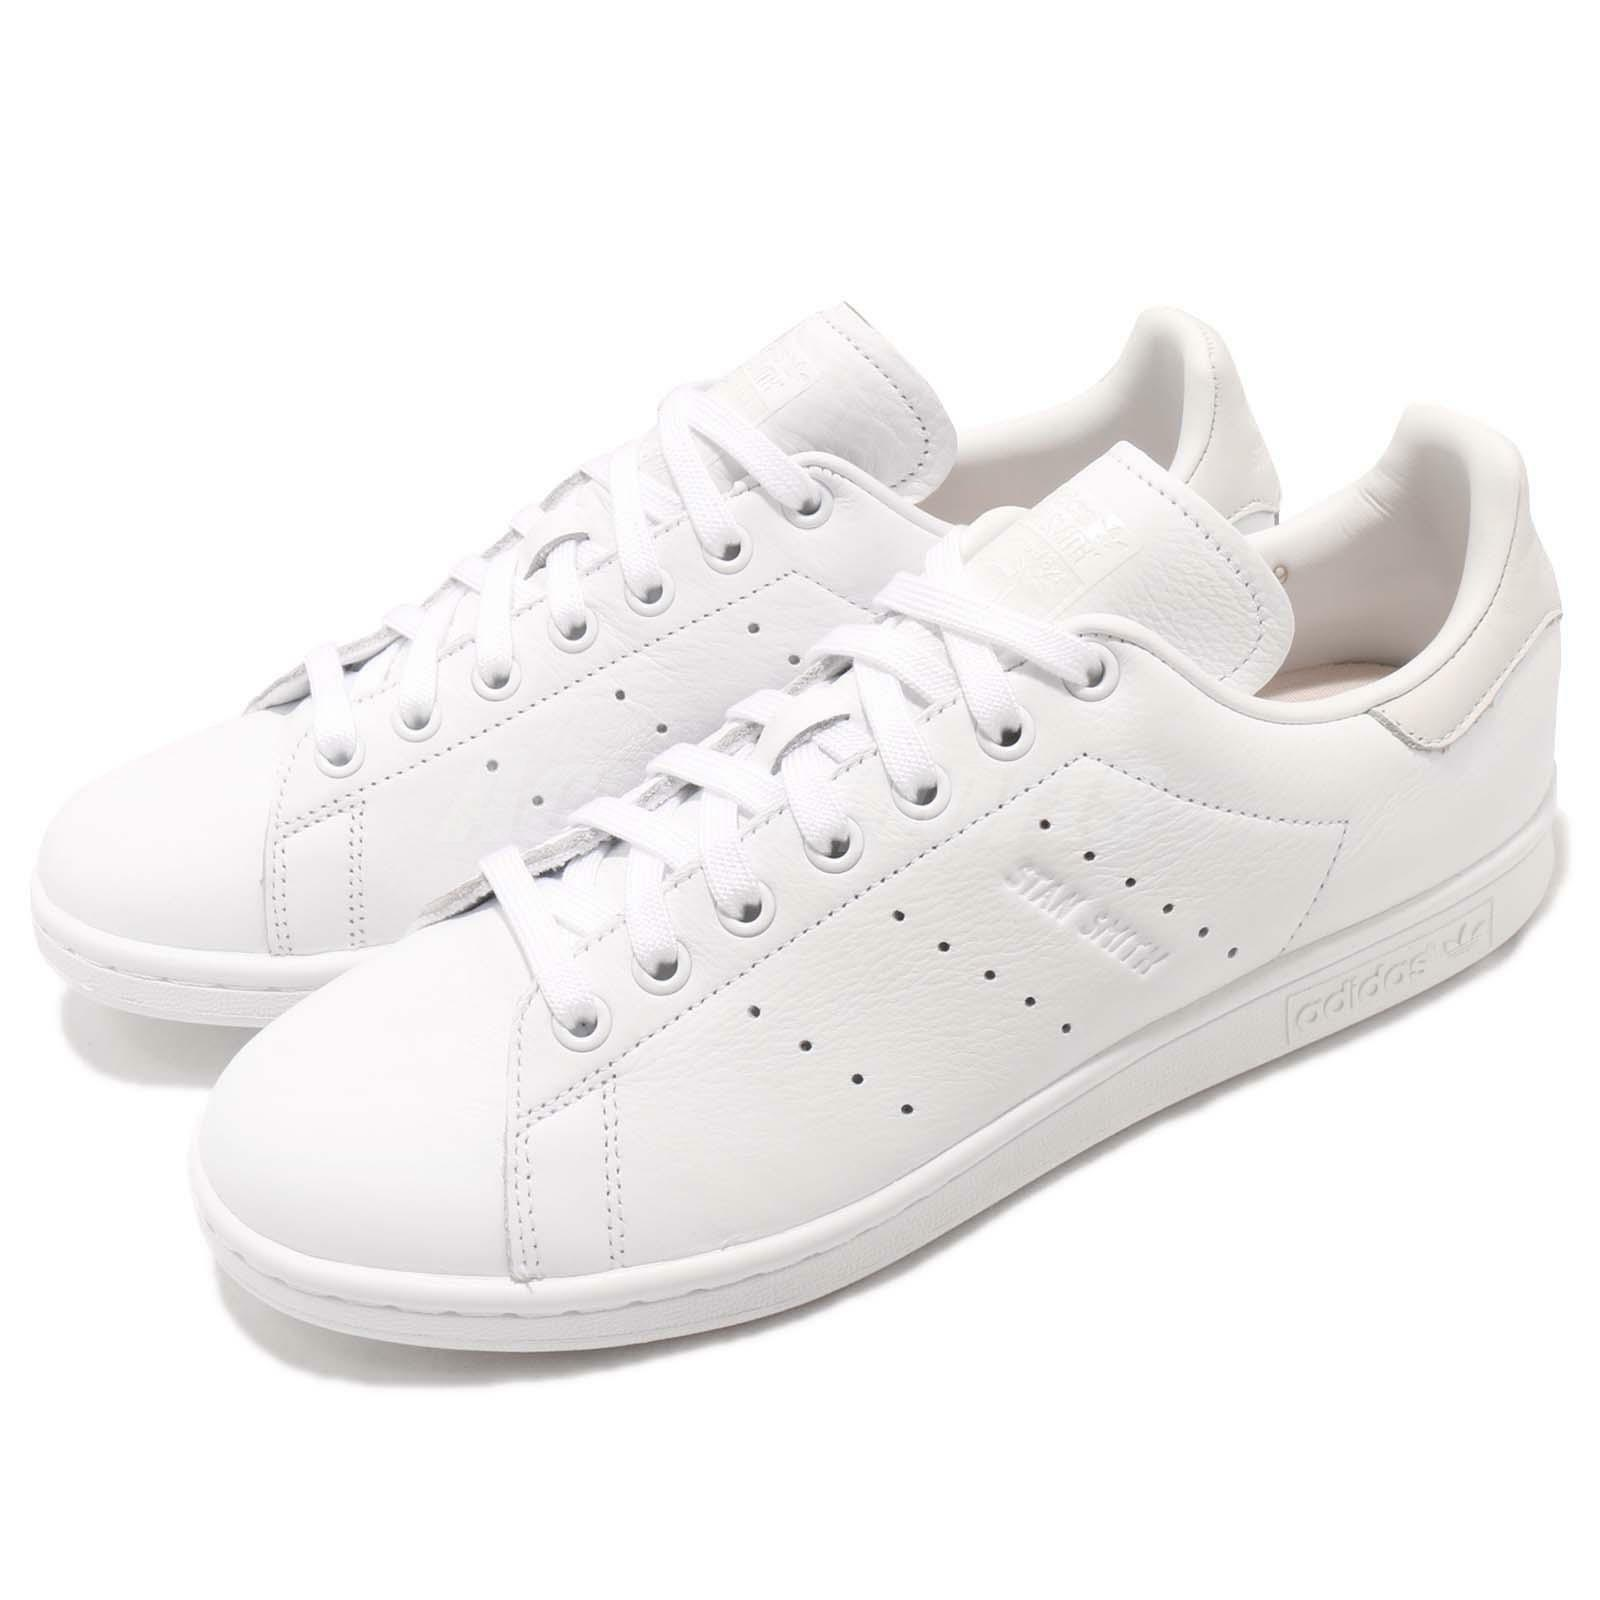 Adidas Originals Stan Smith Triple blanc Men Casual chaussures Turnchaussures CQ2469